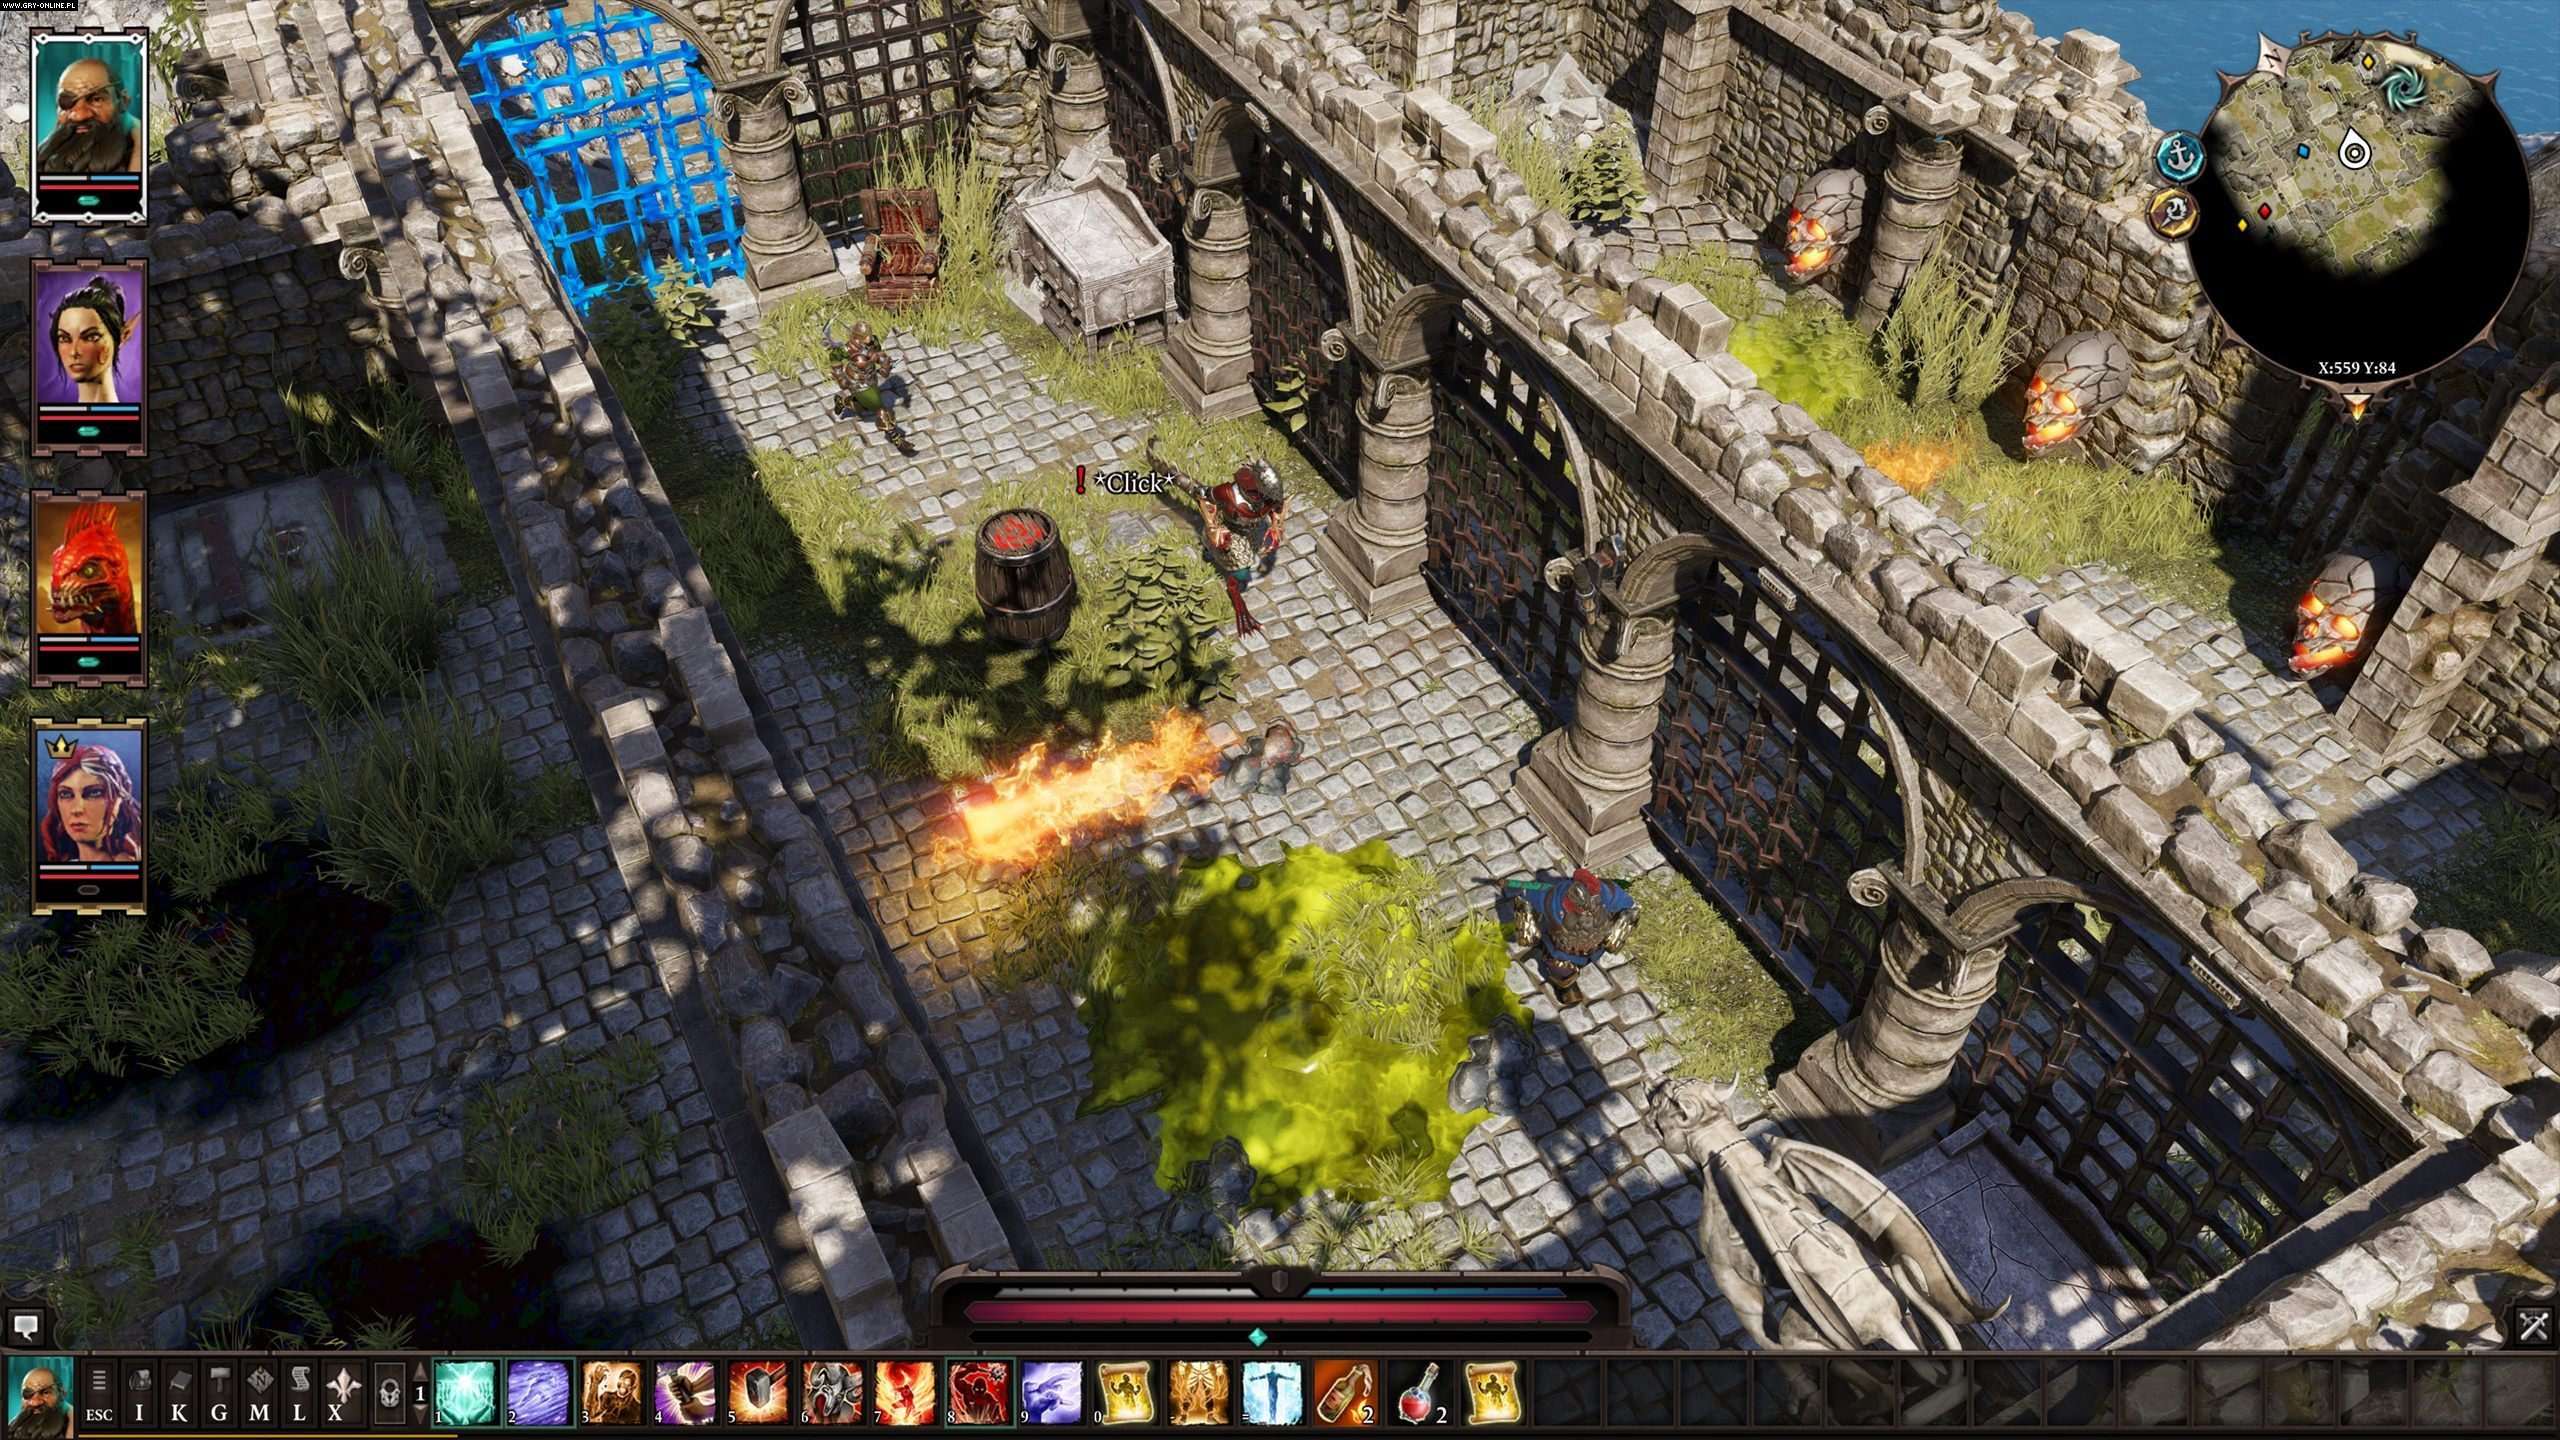 Divinity: Original Sin II - Definitive Edition PC Games Image 51/304, Larian Studios